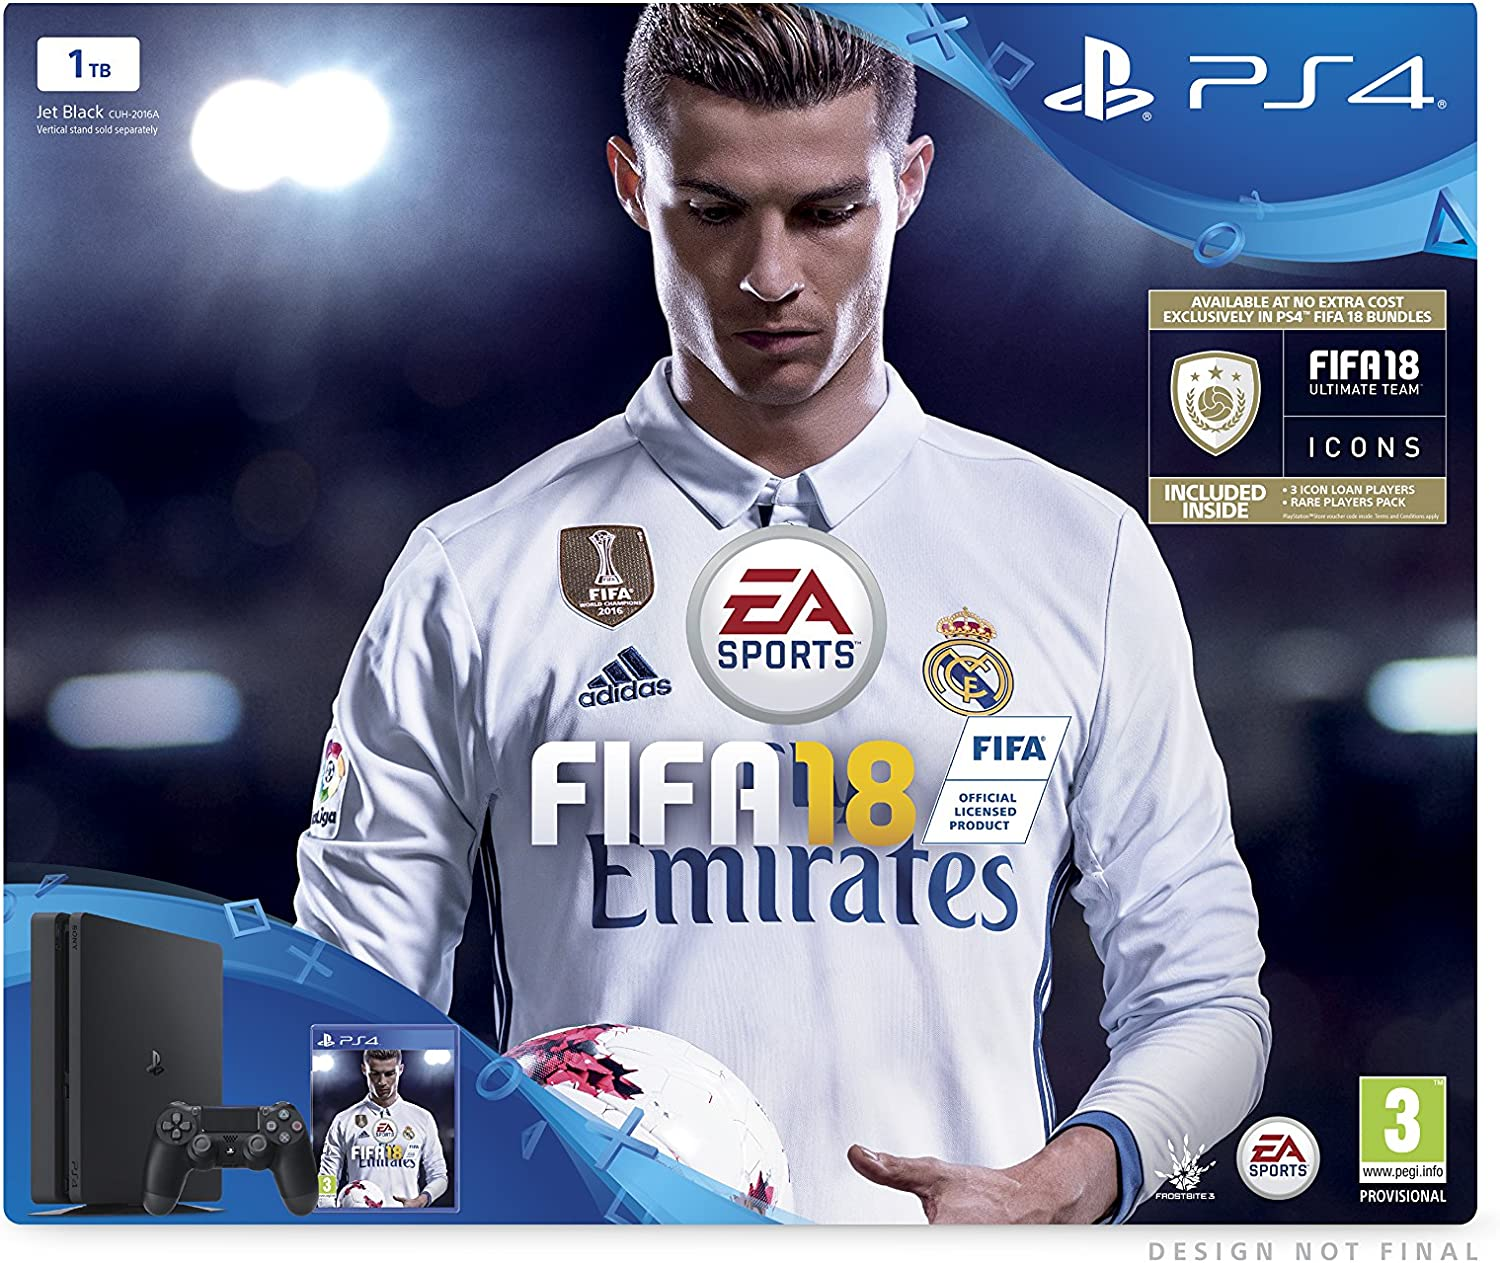 Sony PlayStation 4 FIFA 18 1 TB with FIFA 18 Ultimate Team Icons ...